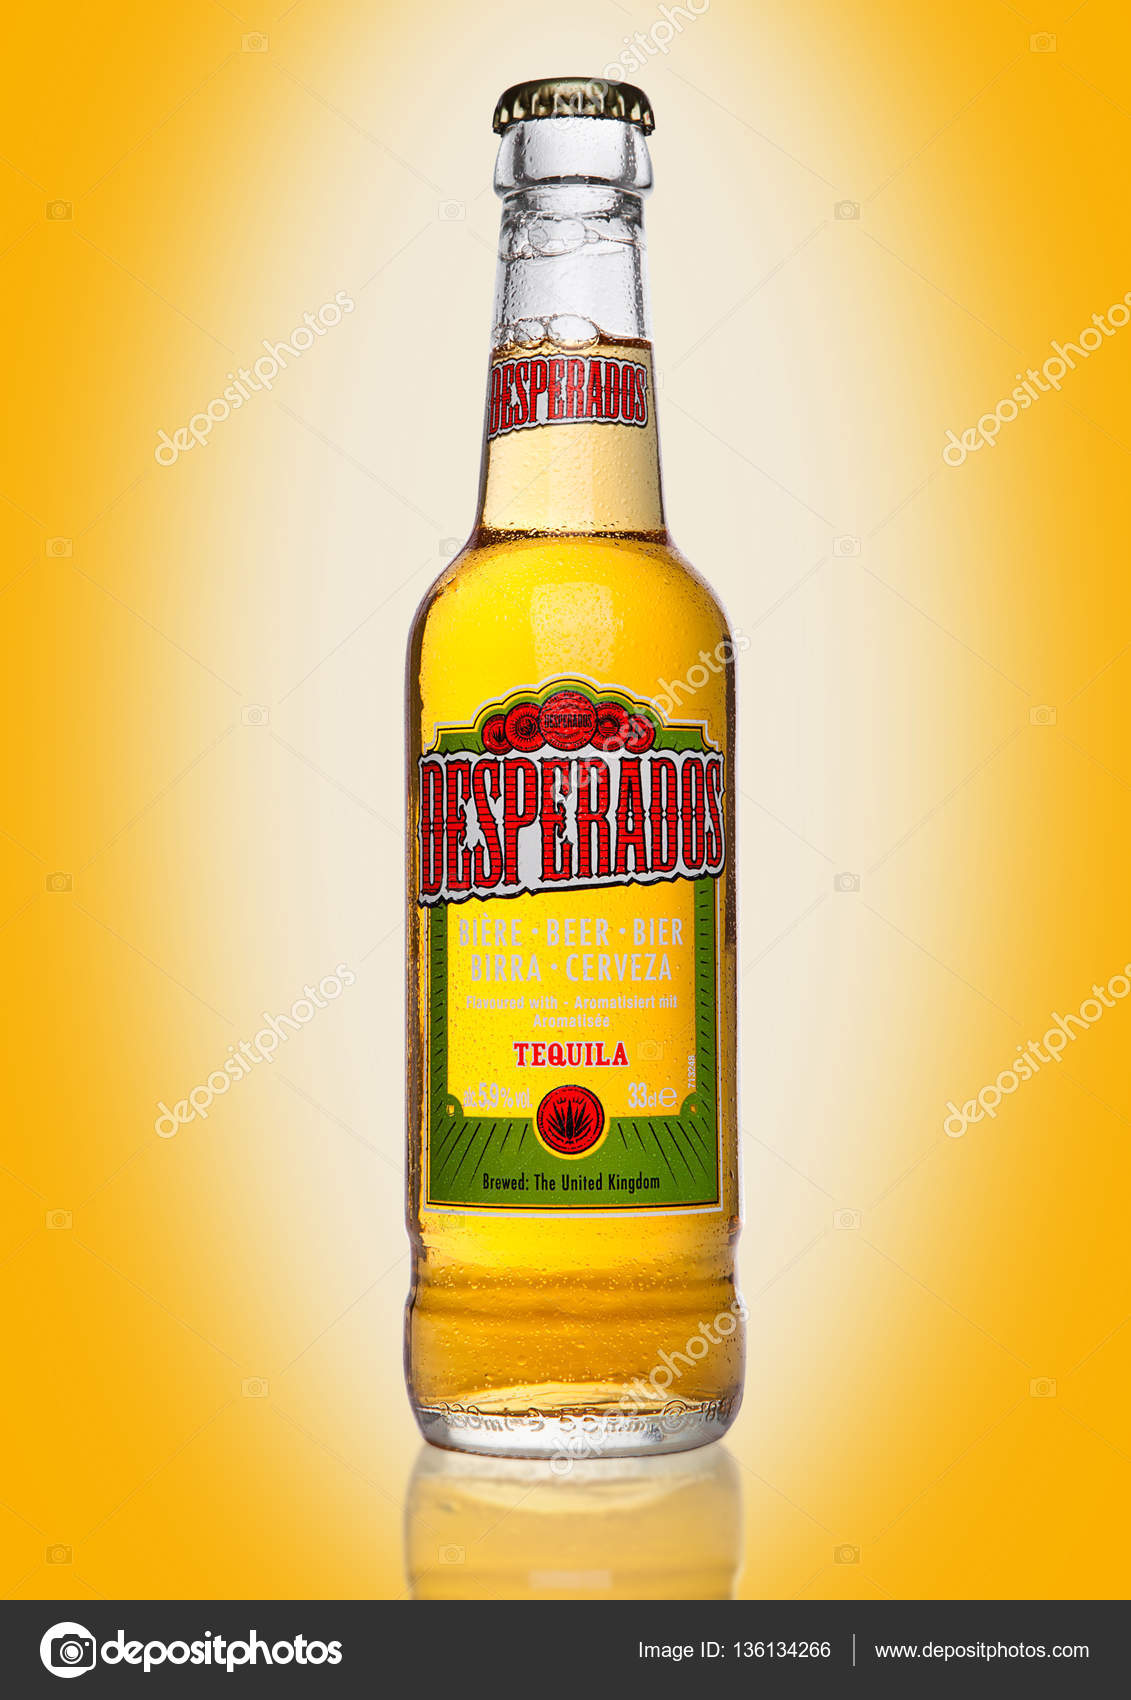 London Uk January 02 2017 Bottle Of Desperados Beer On Yellow Background Lager Flavored With Tequila Is A Popular Beer Produced By Heineken And Sold In Over 50 Countries Stock Editorial Photo C Denismart 136134266